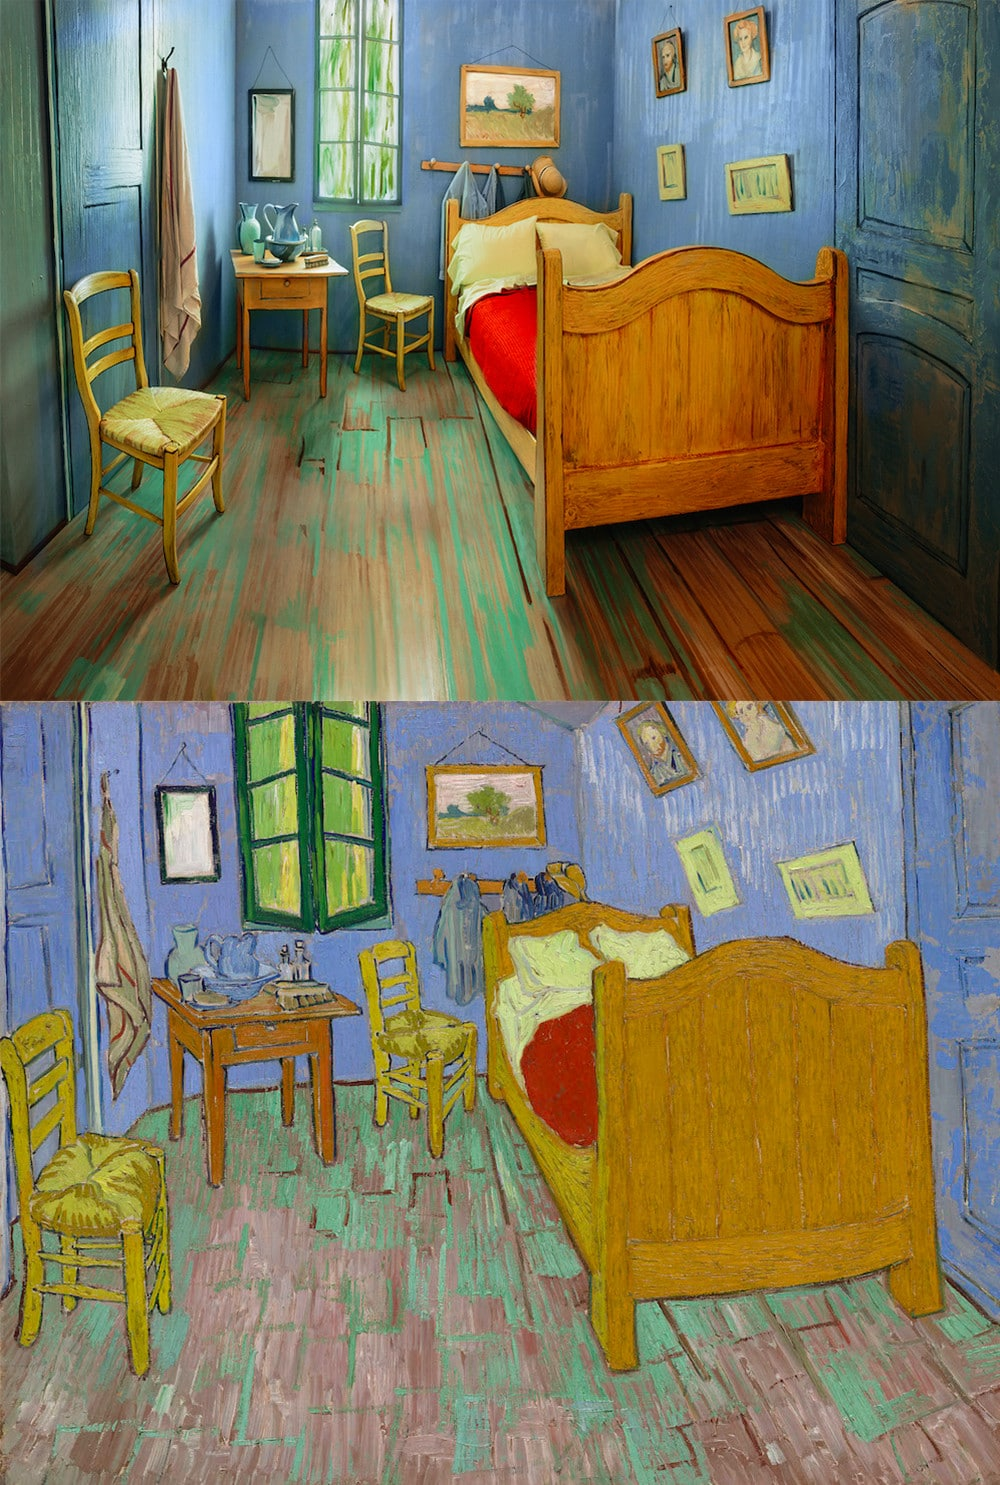 Emejing Chambre Jaune Van Gogh Description Photos - Design Trends ...